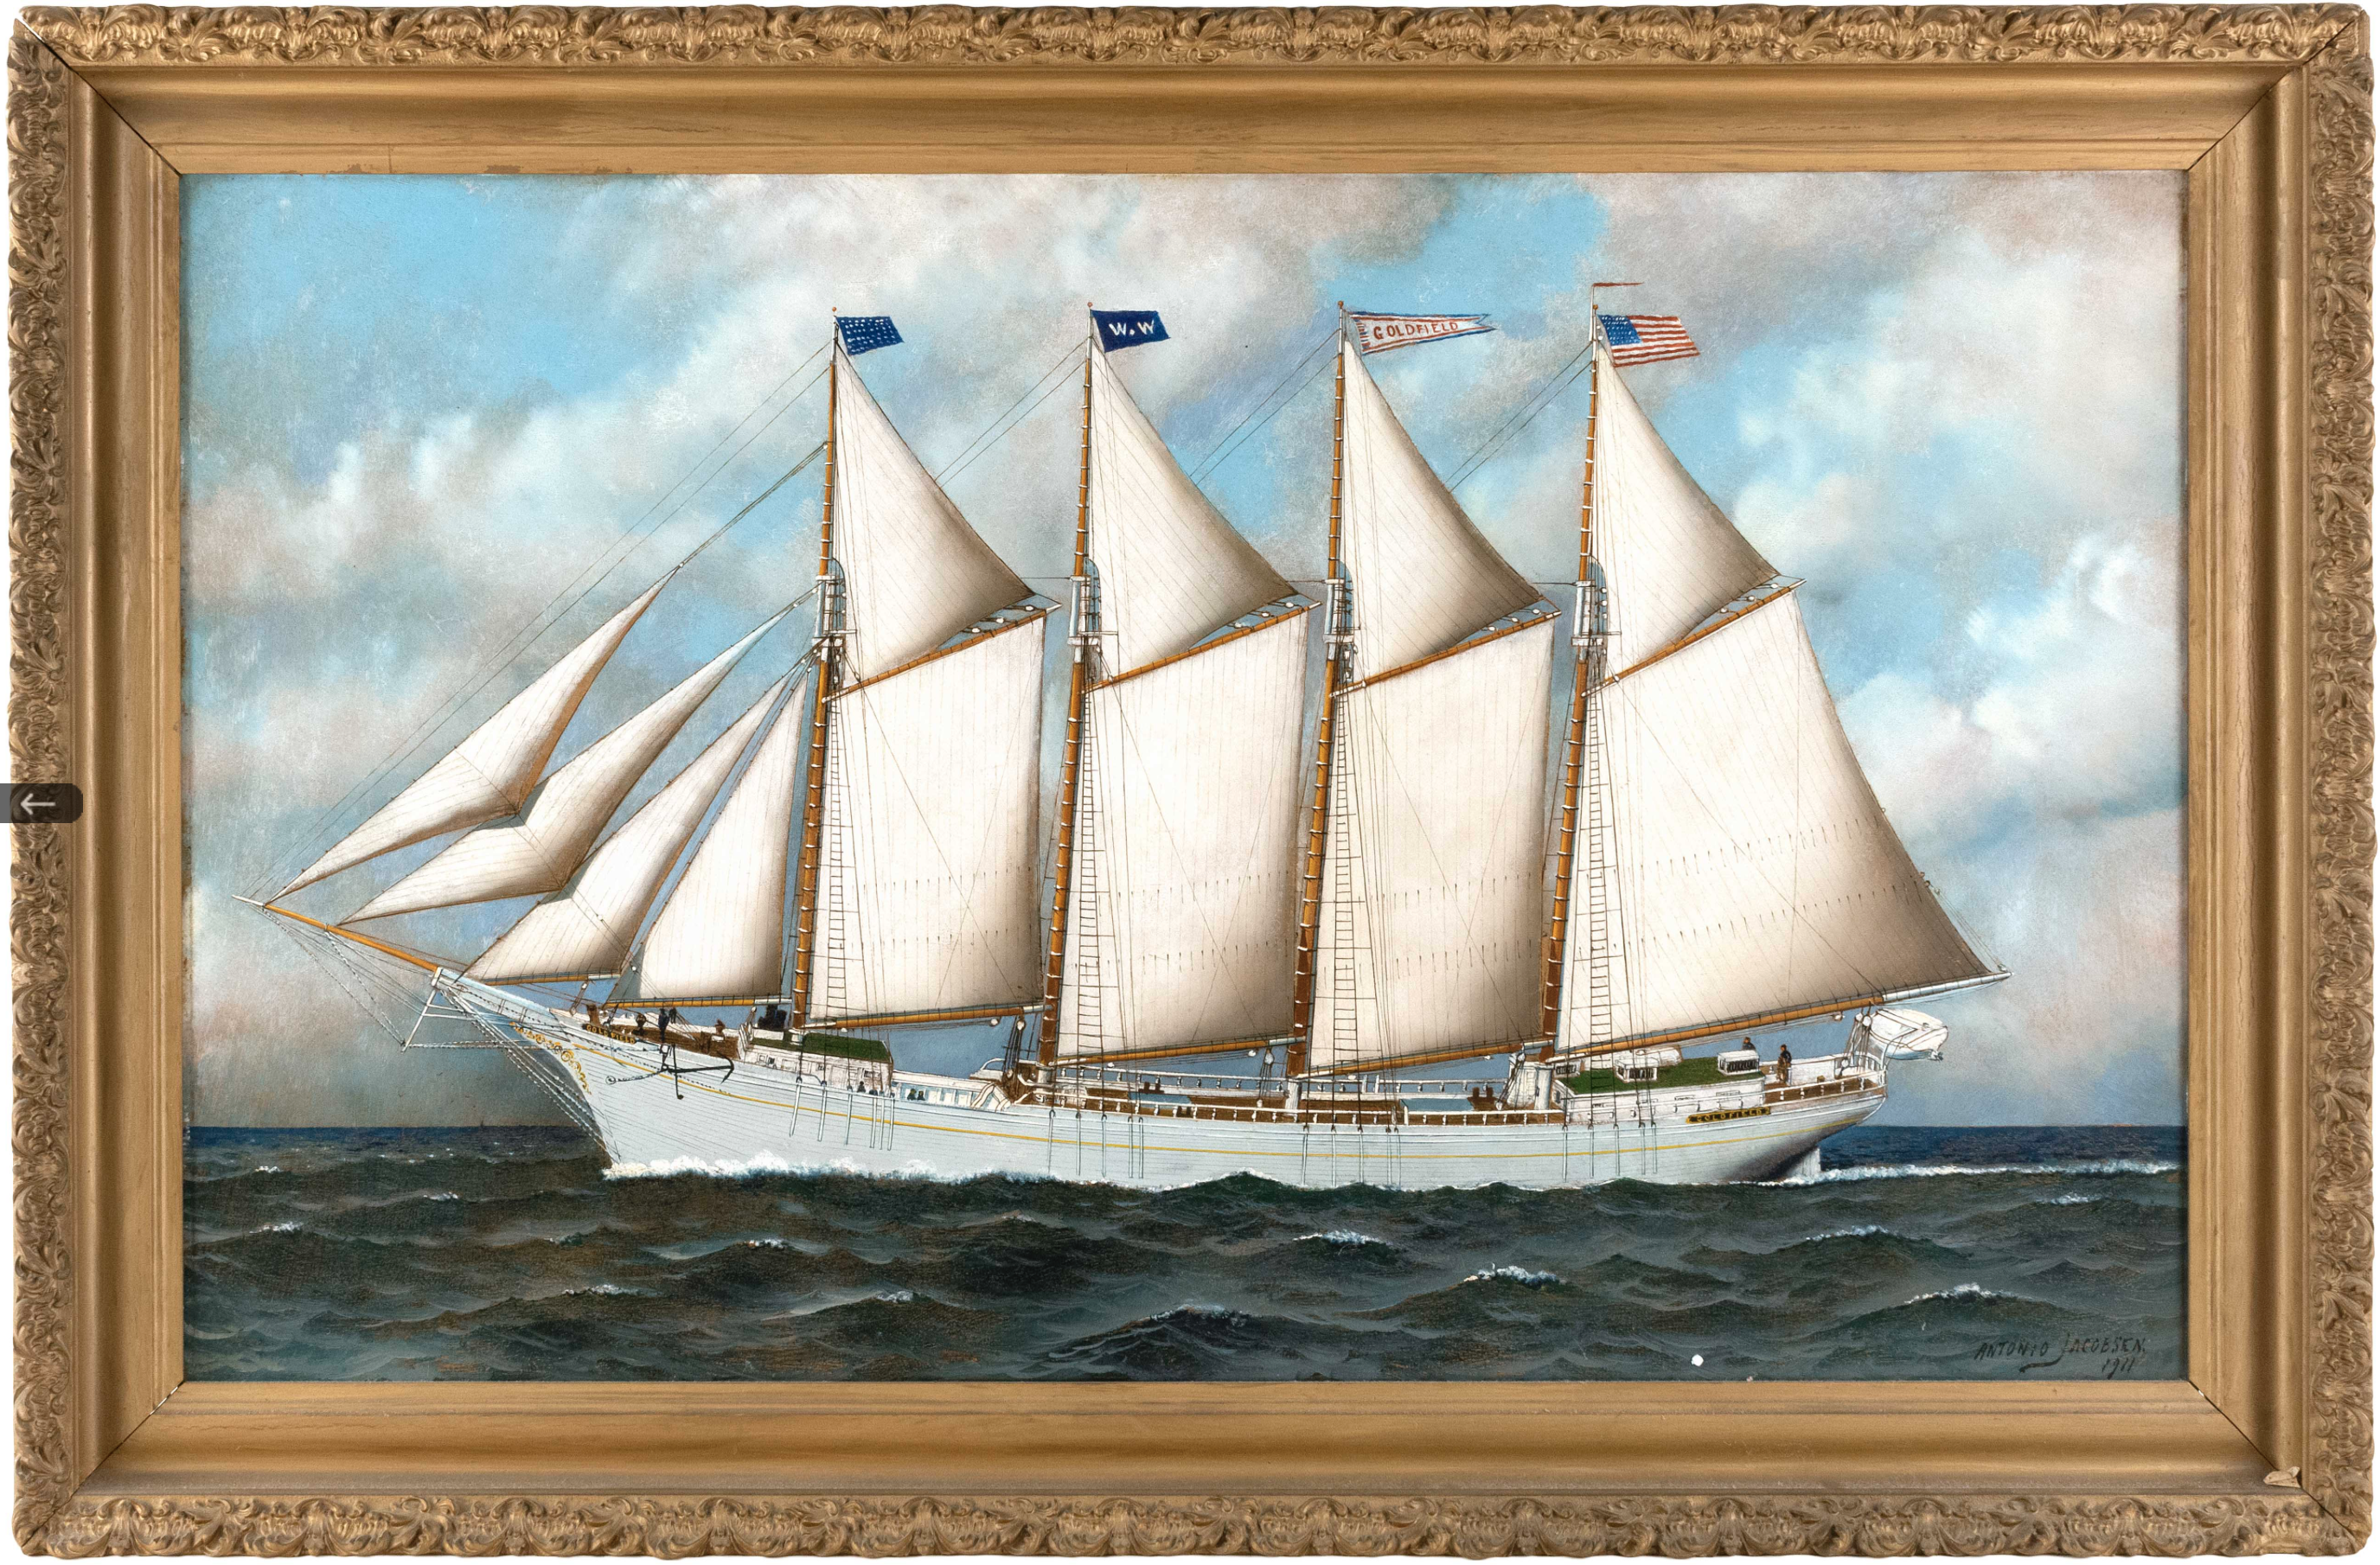 Antonio Jacobsen's 1911 portrait of the schooner dubbed Goldfield depicts the white-bodied vessel in profile, prow to the left. Its four masts are topped by, respectively, an American jack, a line flag, a flag with the ship's name, and the American flag.